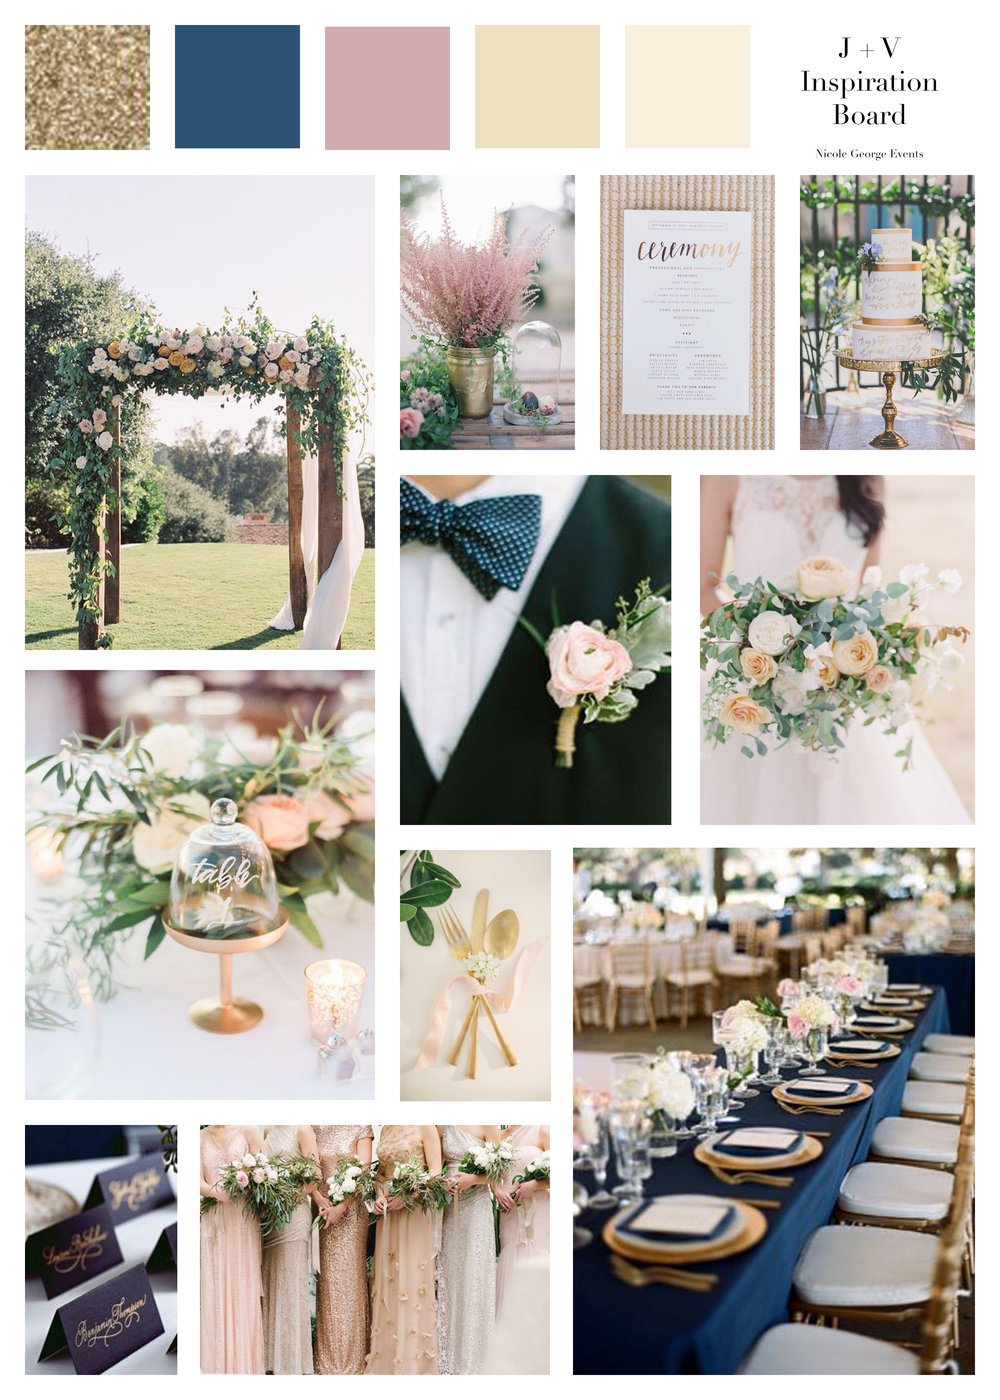 Engagement Shoot: What It's Like To Be Planning A Wedding || My Wedding Style Guide